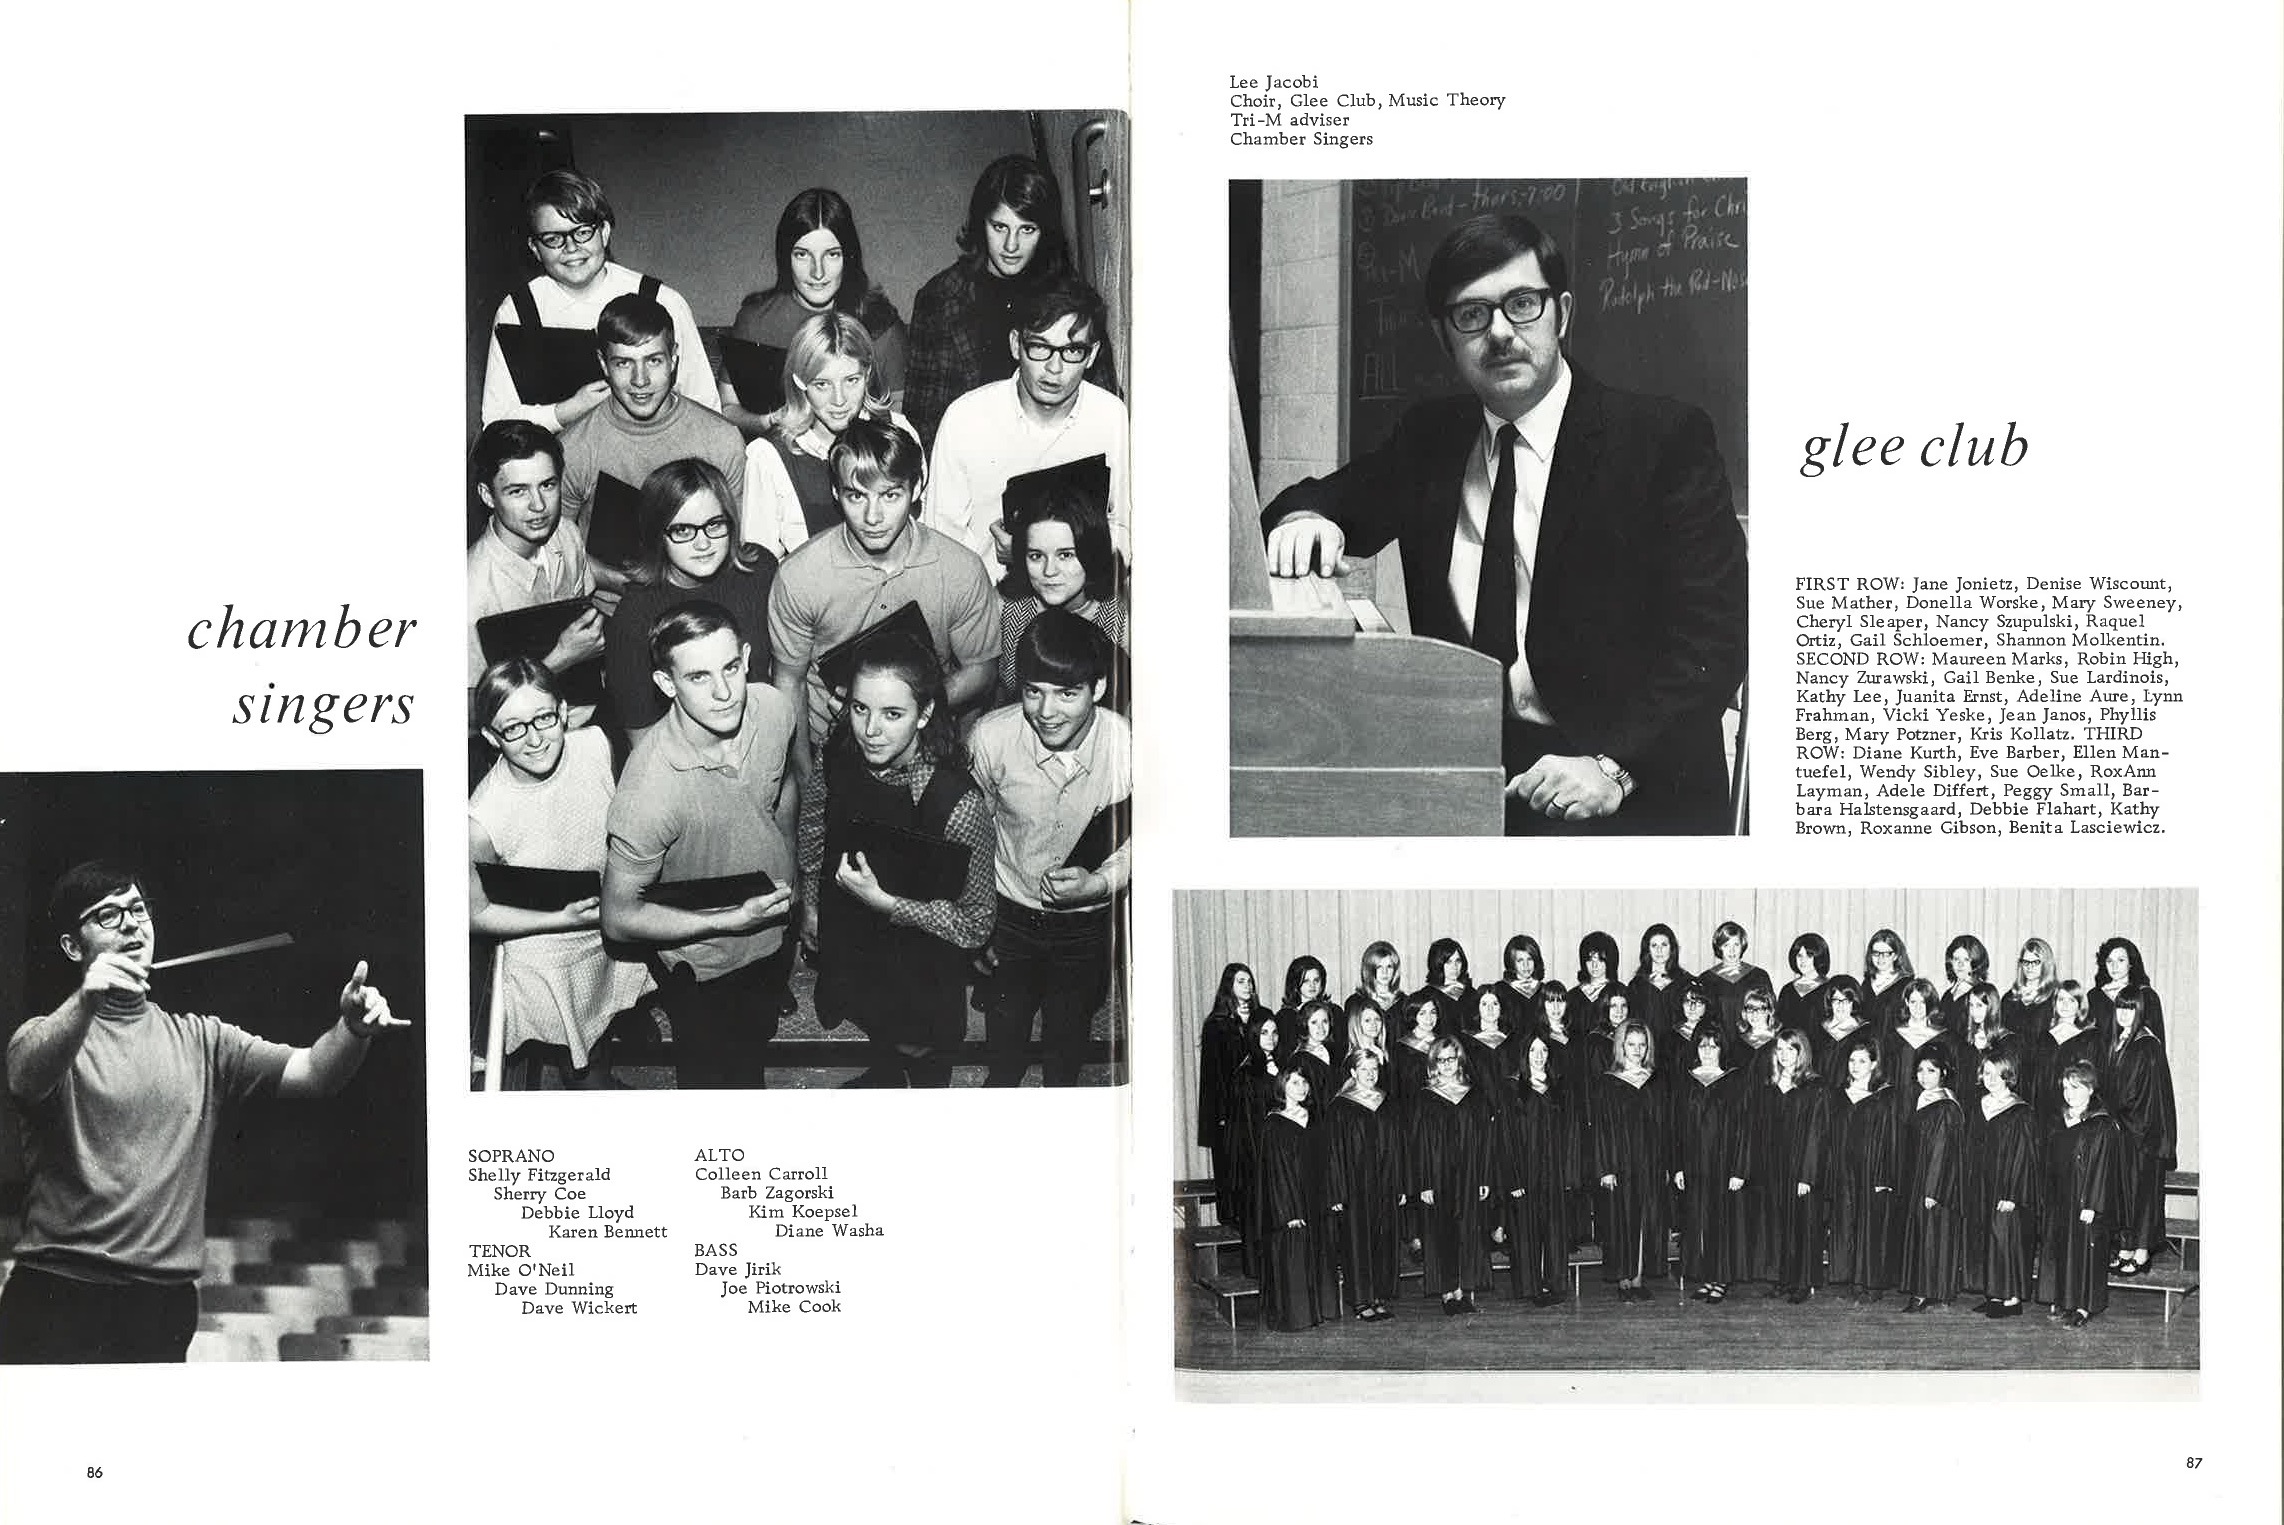 1970_Yearbook_86-87.jpg